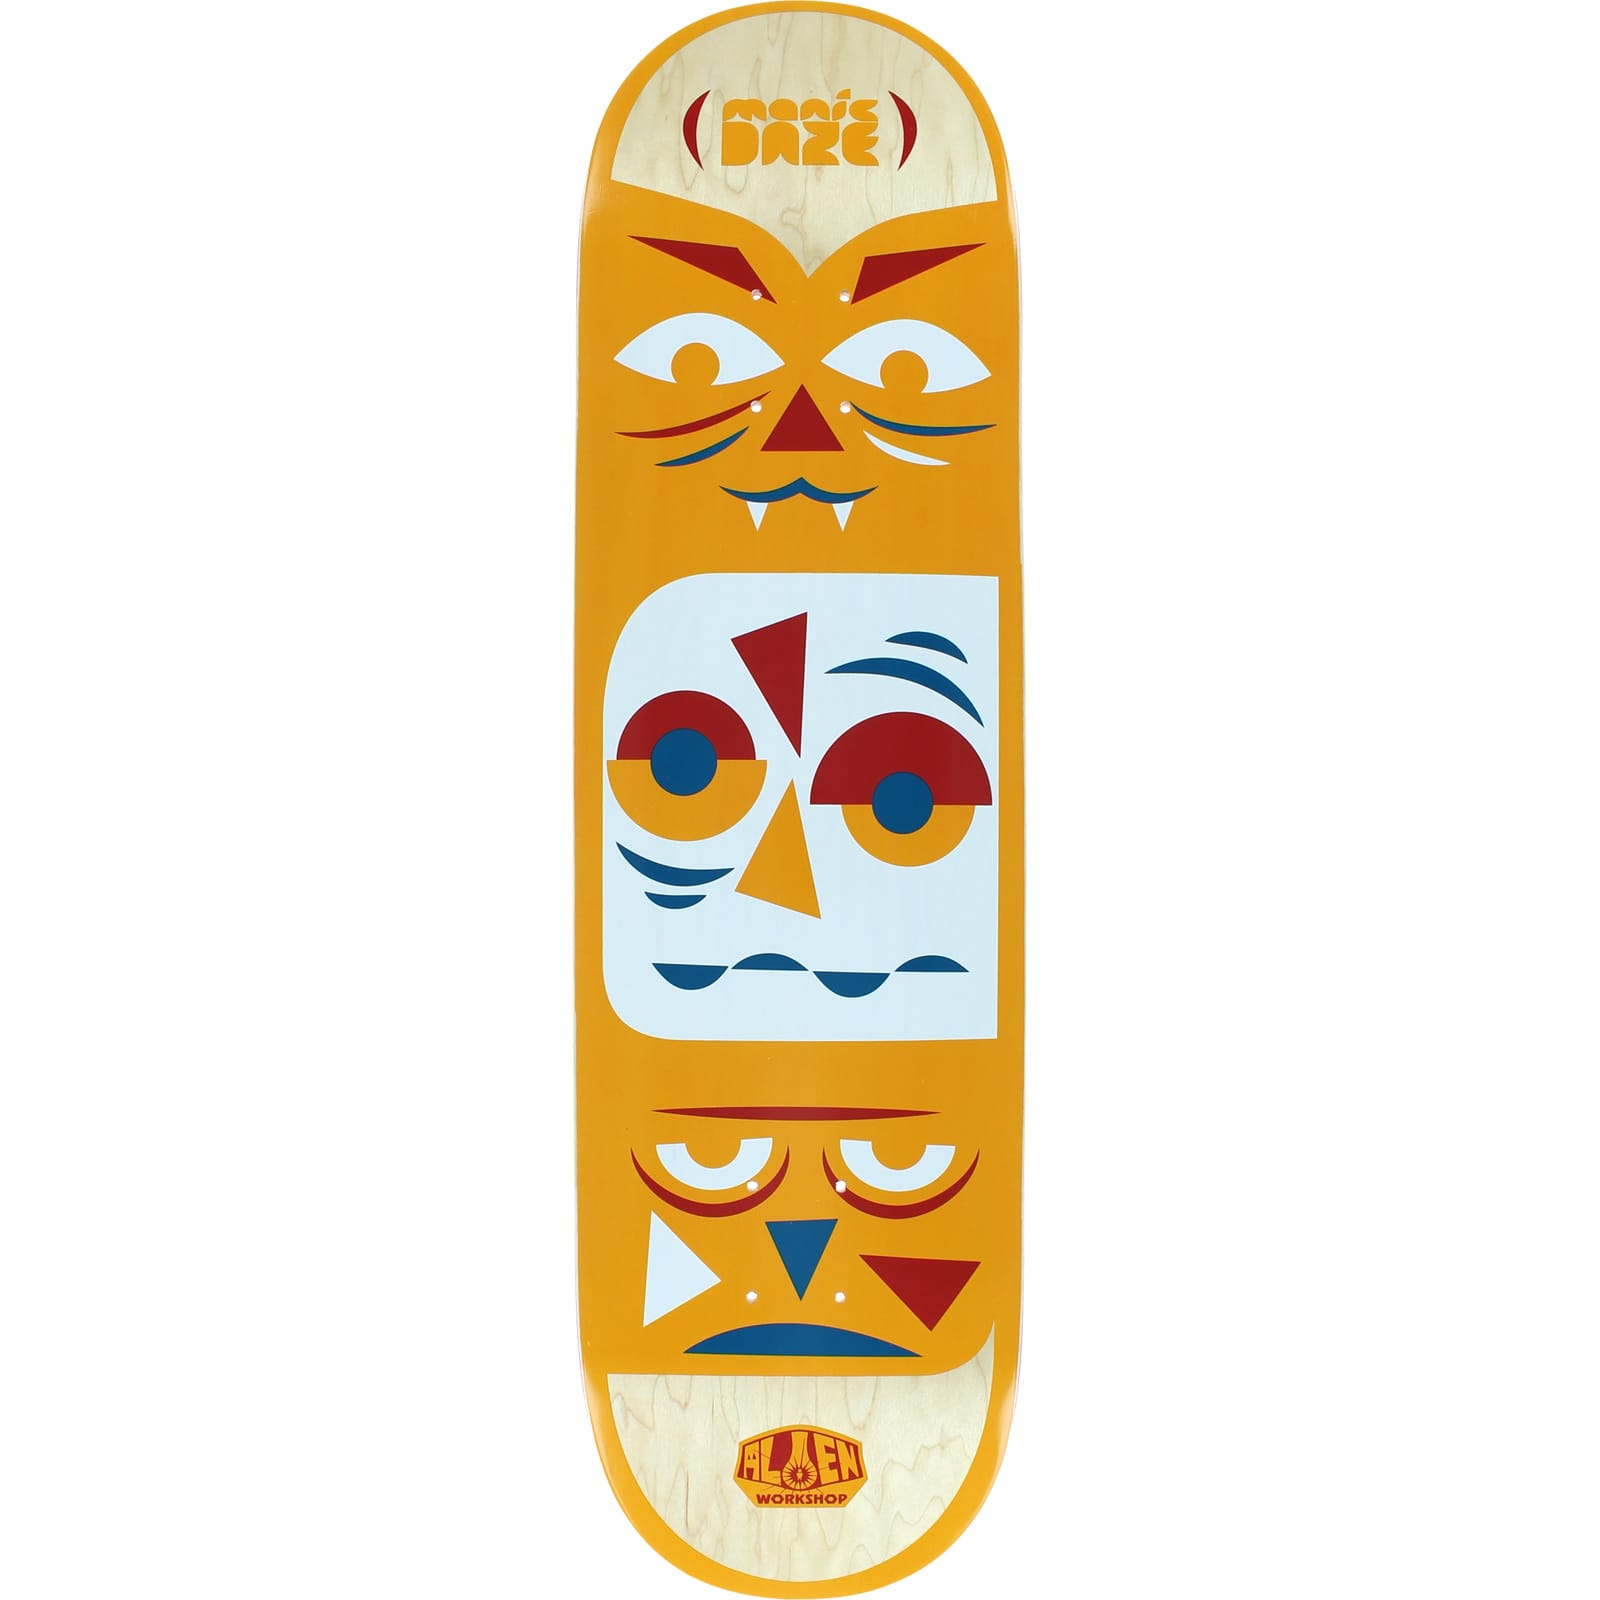 Image of Alien Workshop Manic Daze MD Skateboard Deck